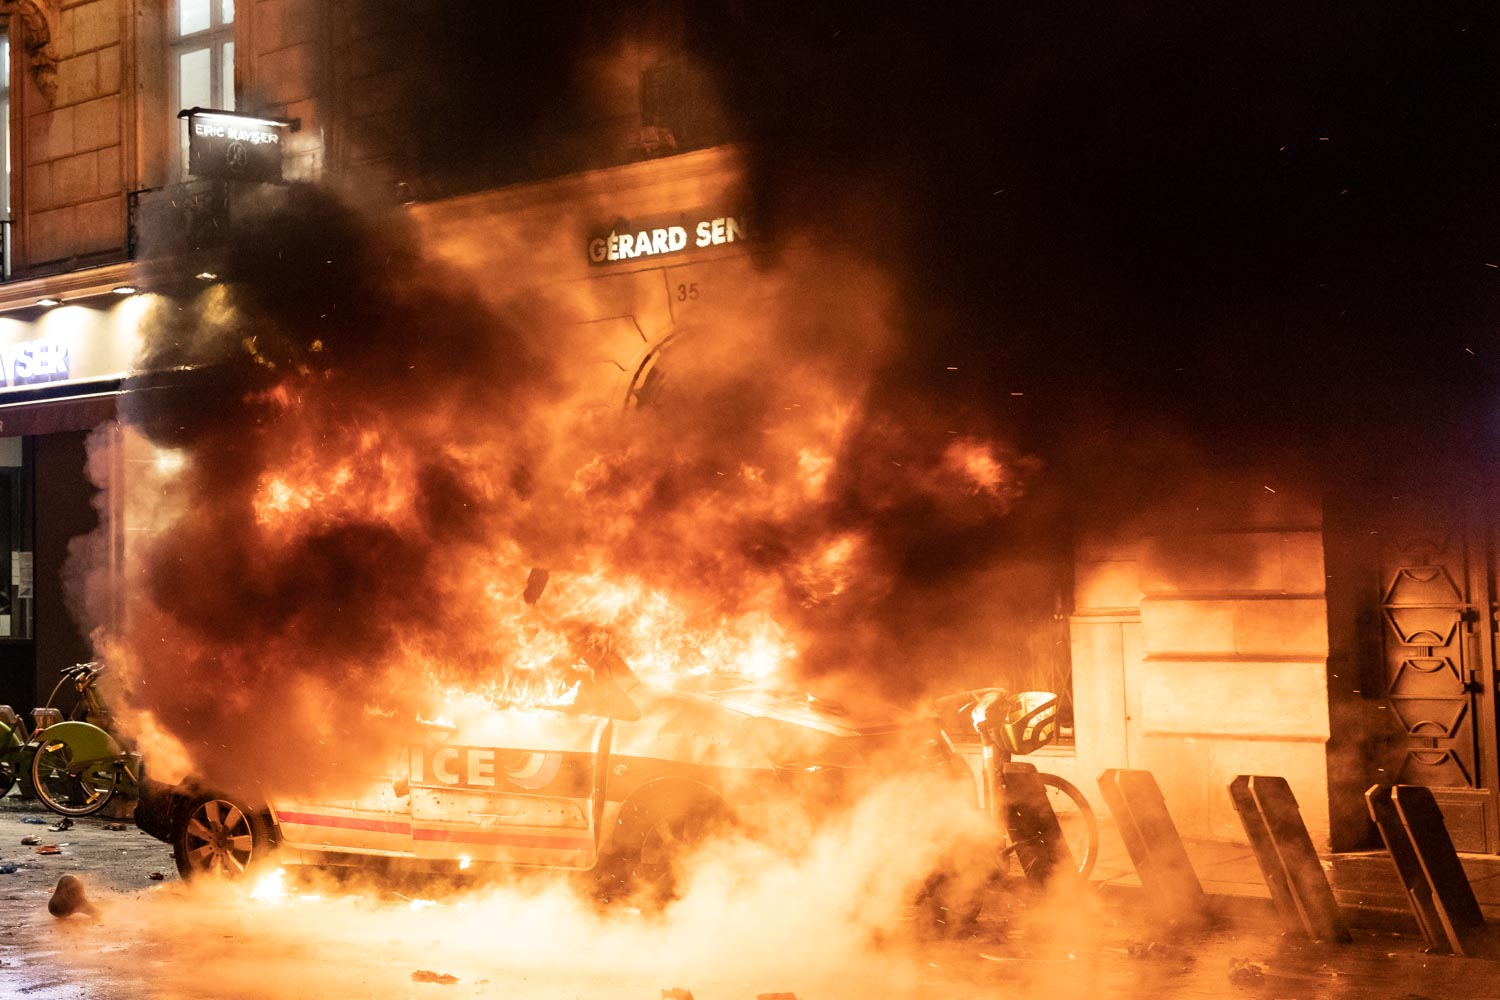 Rioters set fire to a Police nationale van in Central Paris.